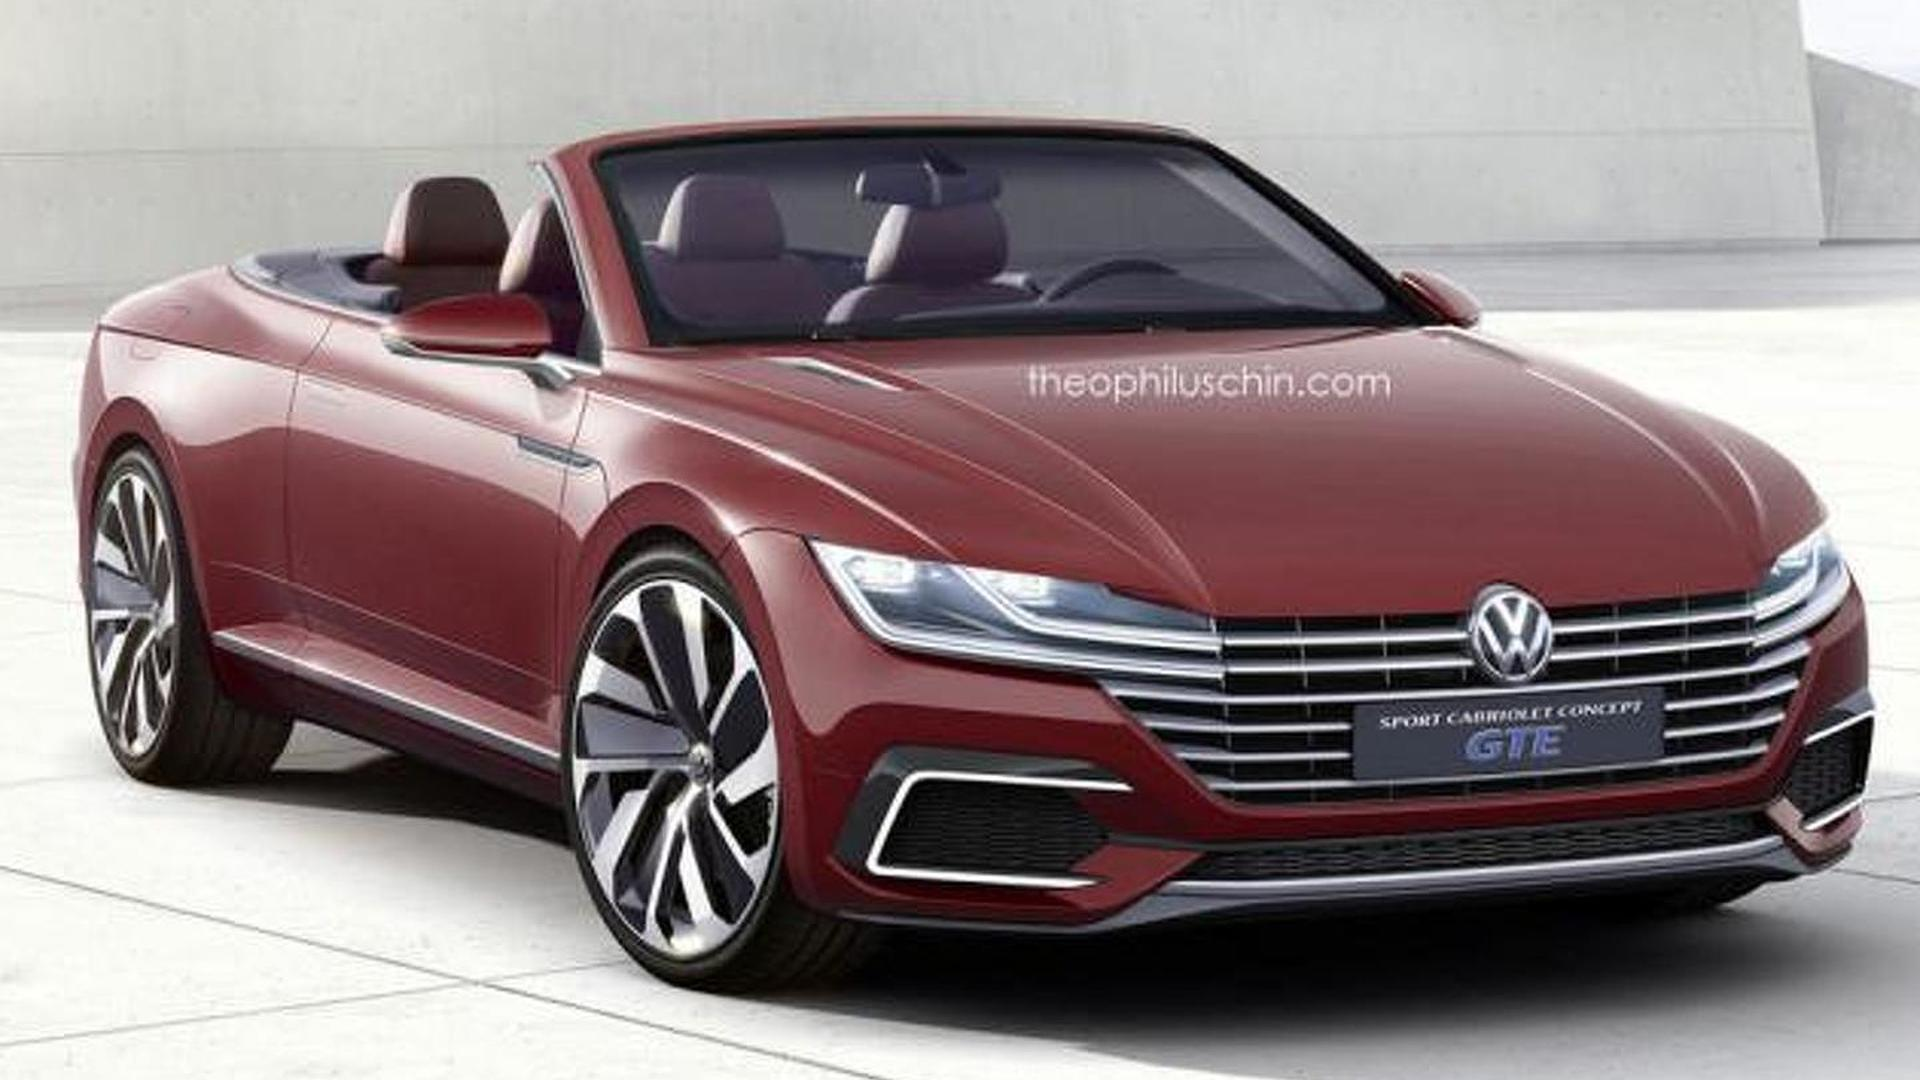 volkswagen eos replacement rendered as the sport cabriolet concept gte. Black Bedroom Furniture Sets. Home Design Ideas